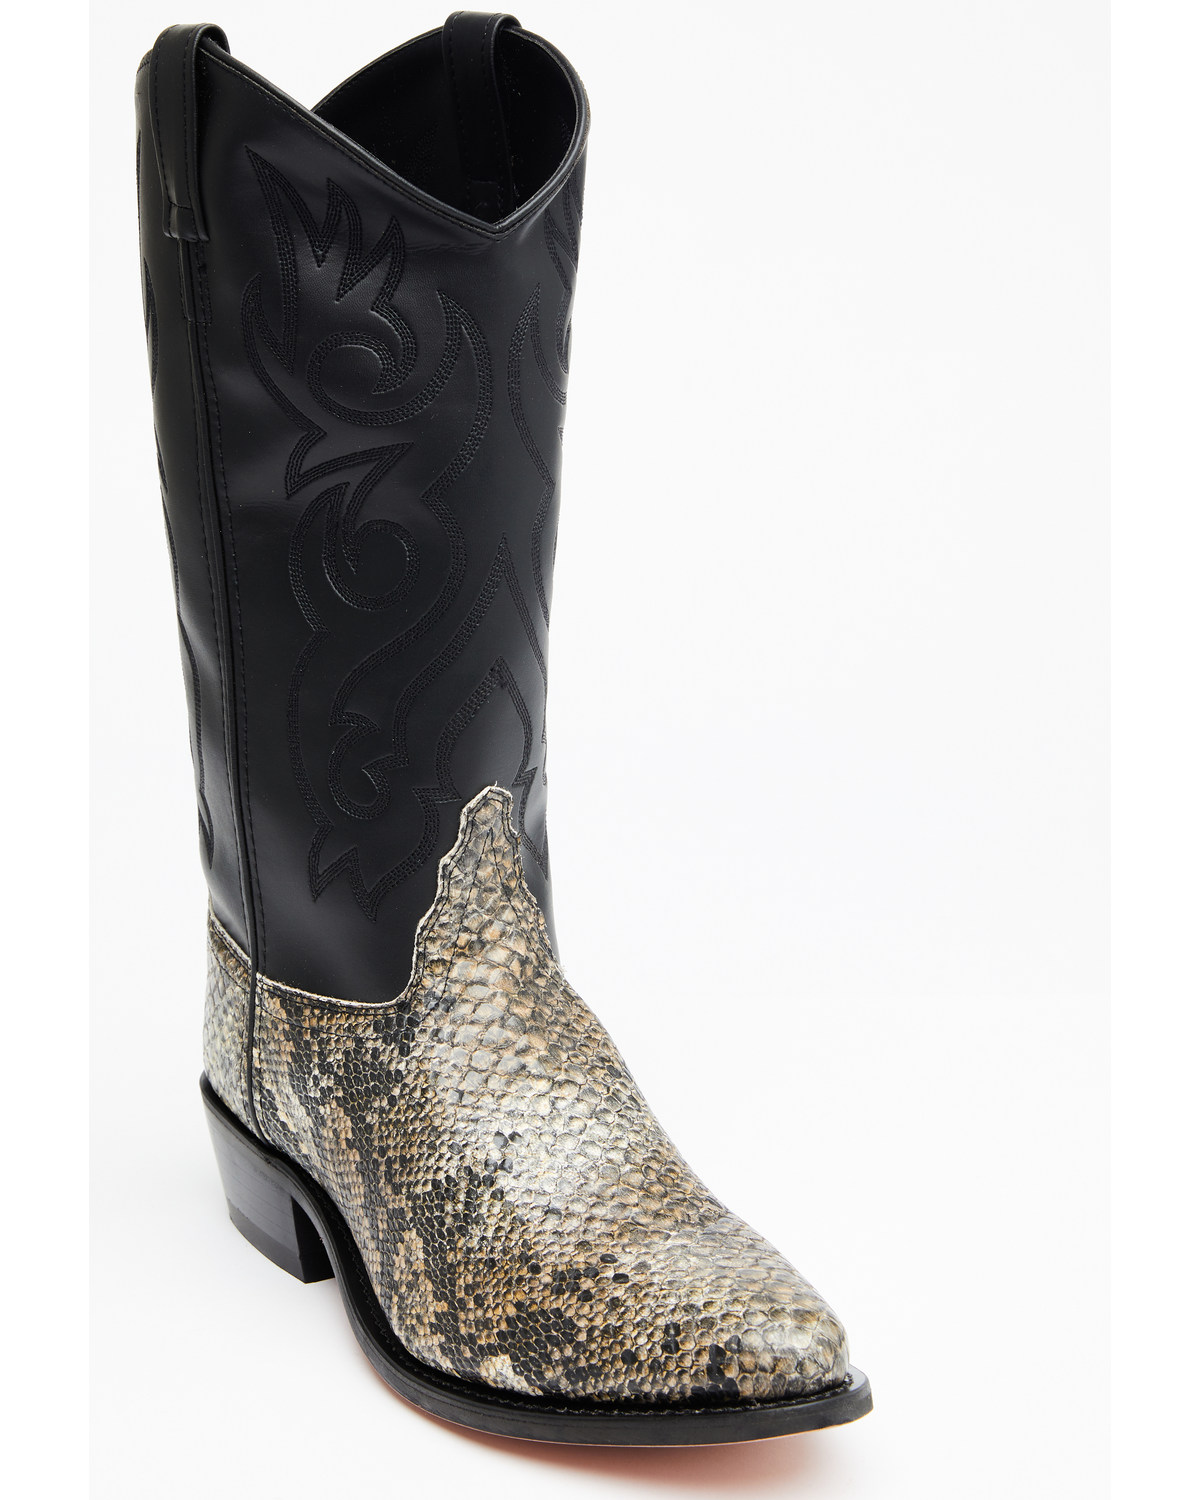 Old West Snake Printed Cowboy Boots Boot Barn